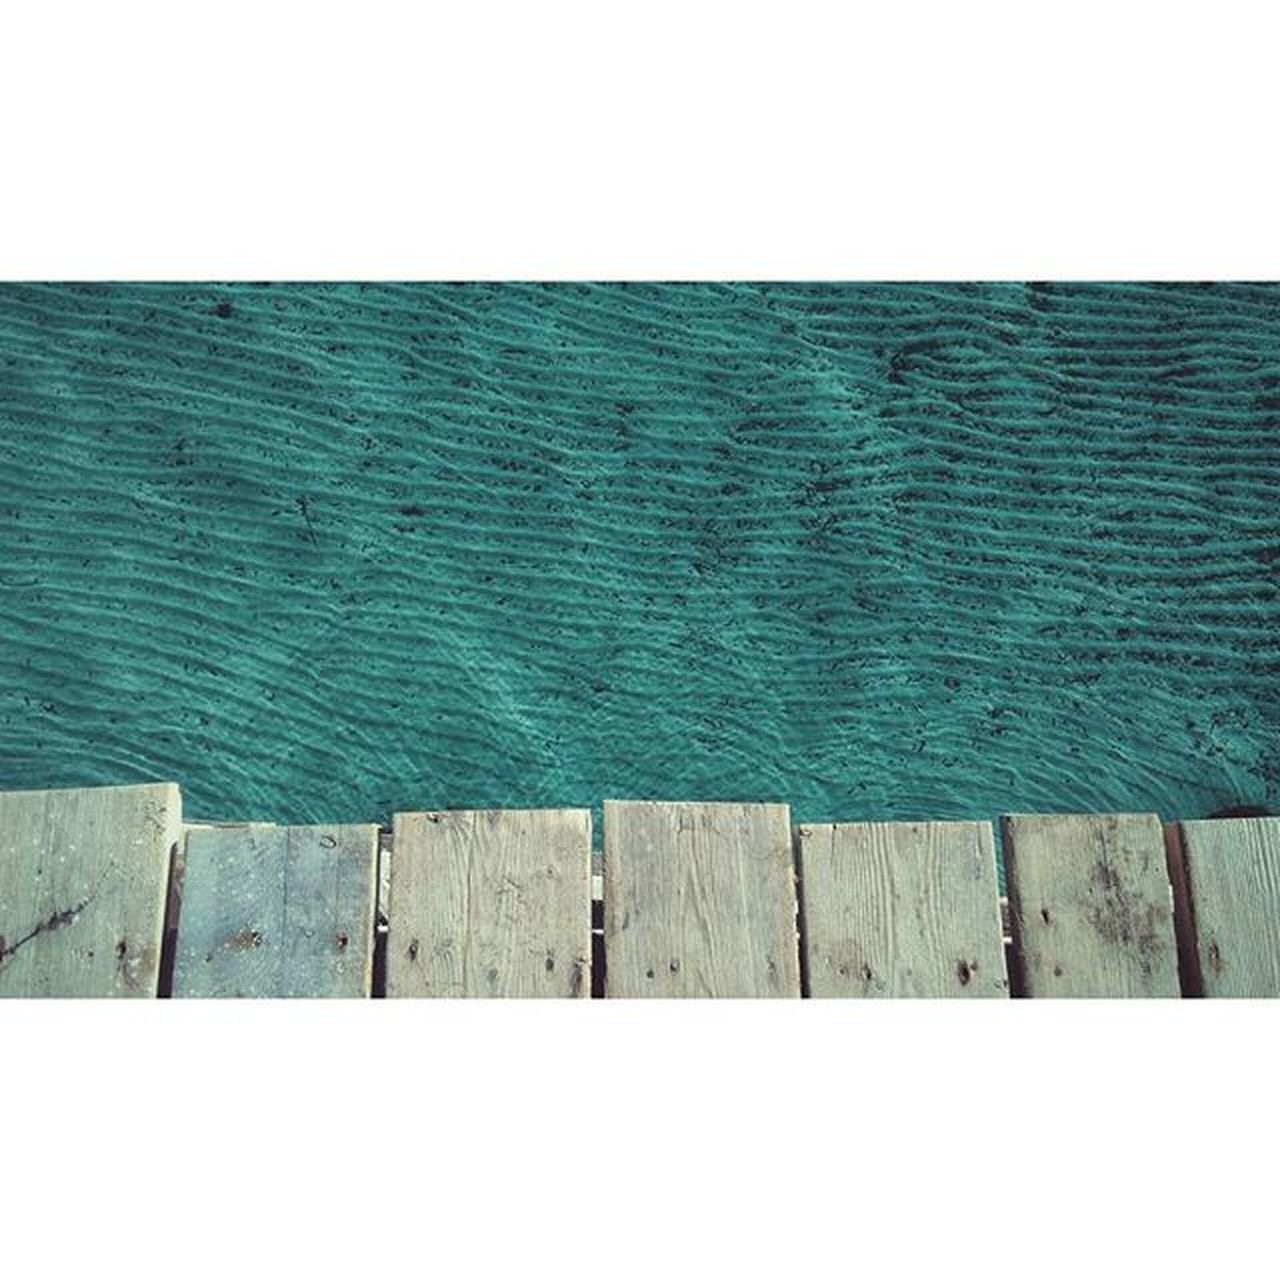 wood - material, pier, sea, water, outdoors, day, no people, nature, wood paneling, jetty, beauty in nature, close-up